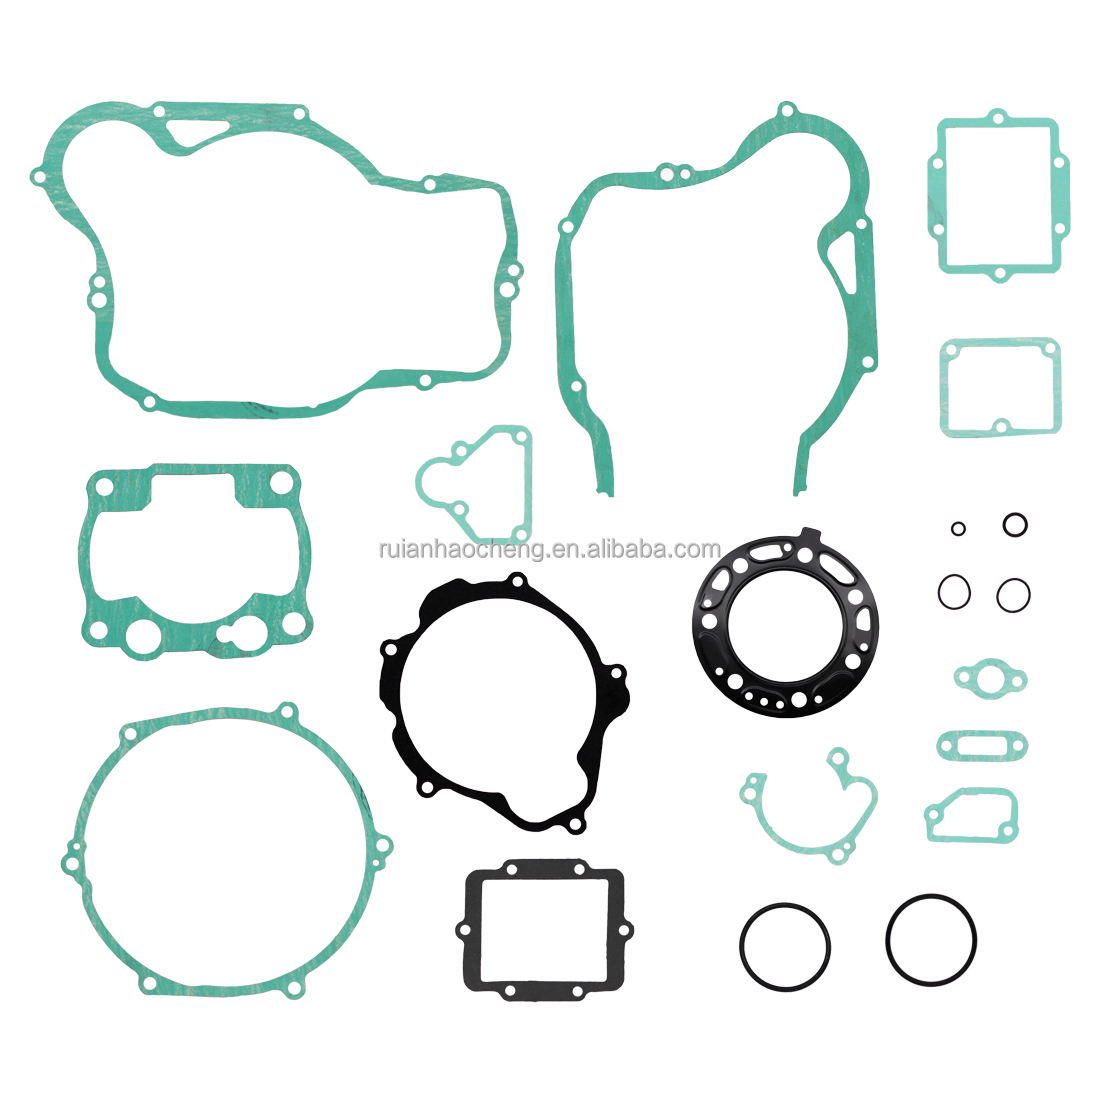 For Kawasaki High Quality Complete Engine Gasket Kit Set KX 250 [1988-1992] (18 Pcs)